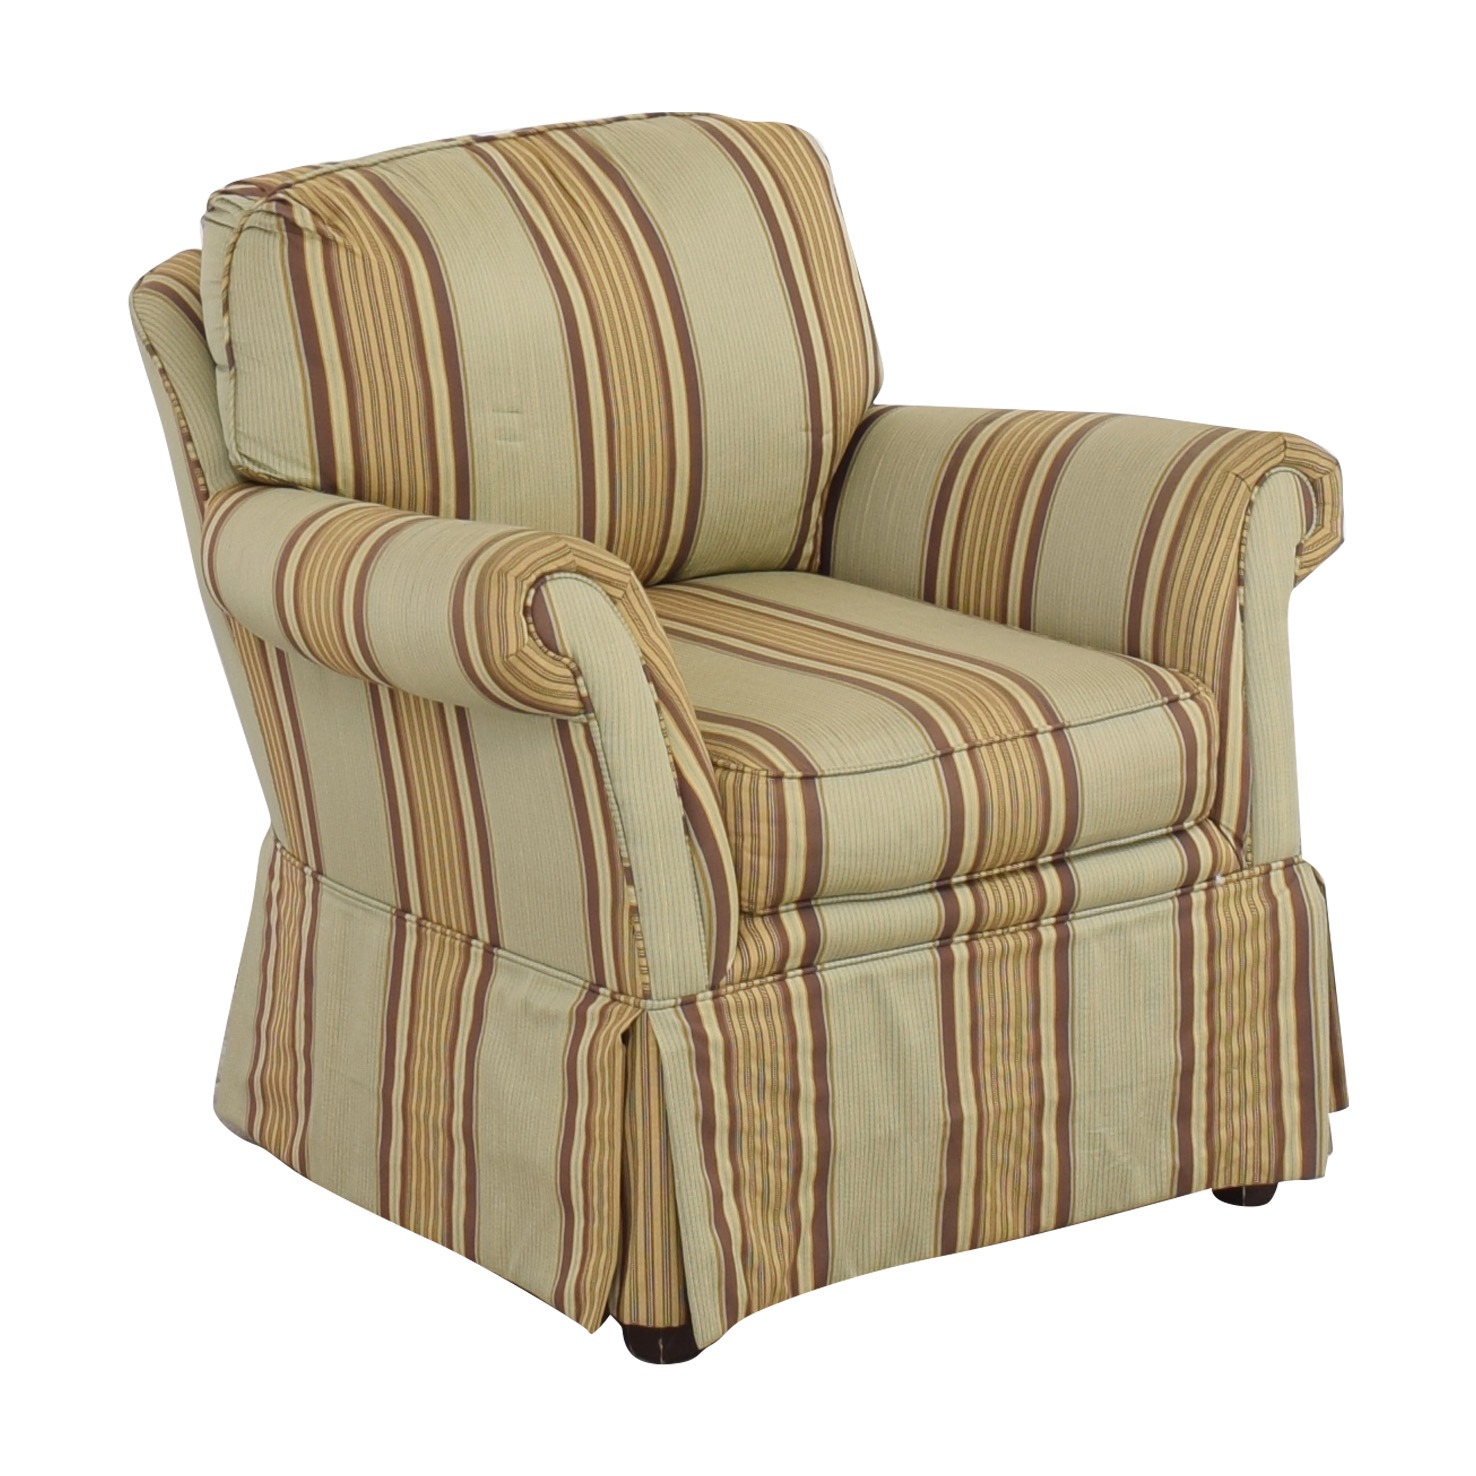 shop Harden Roll Arm Lounge Chair Harden Chairs